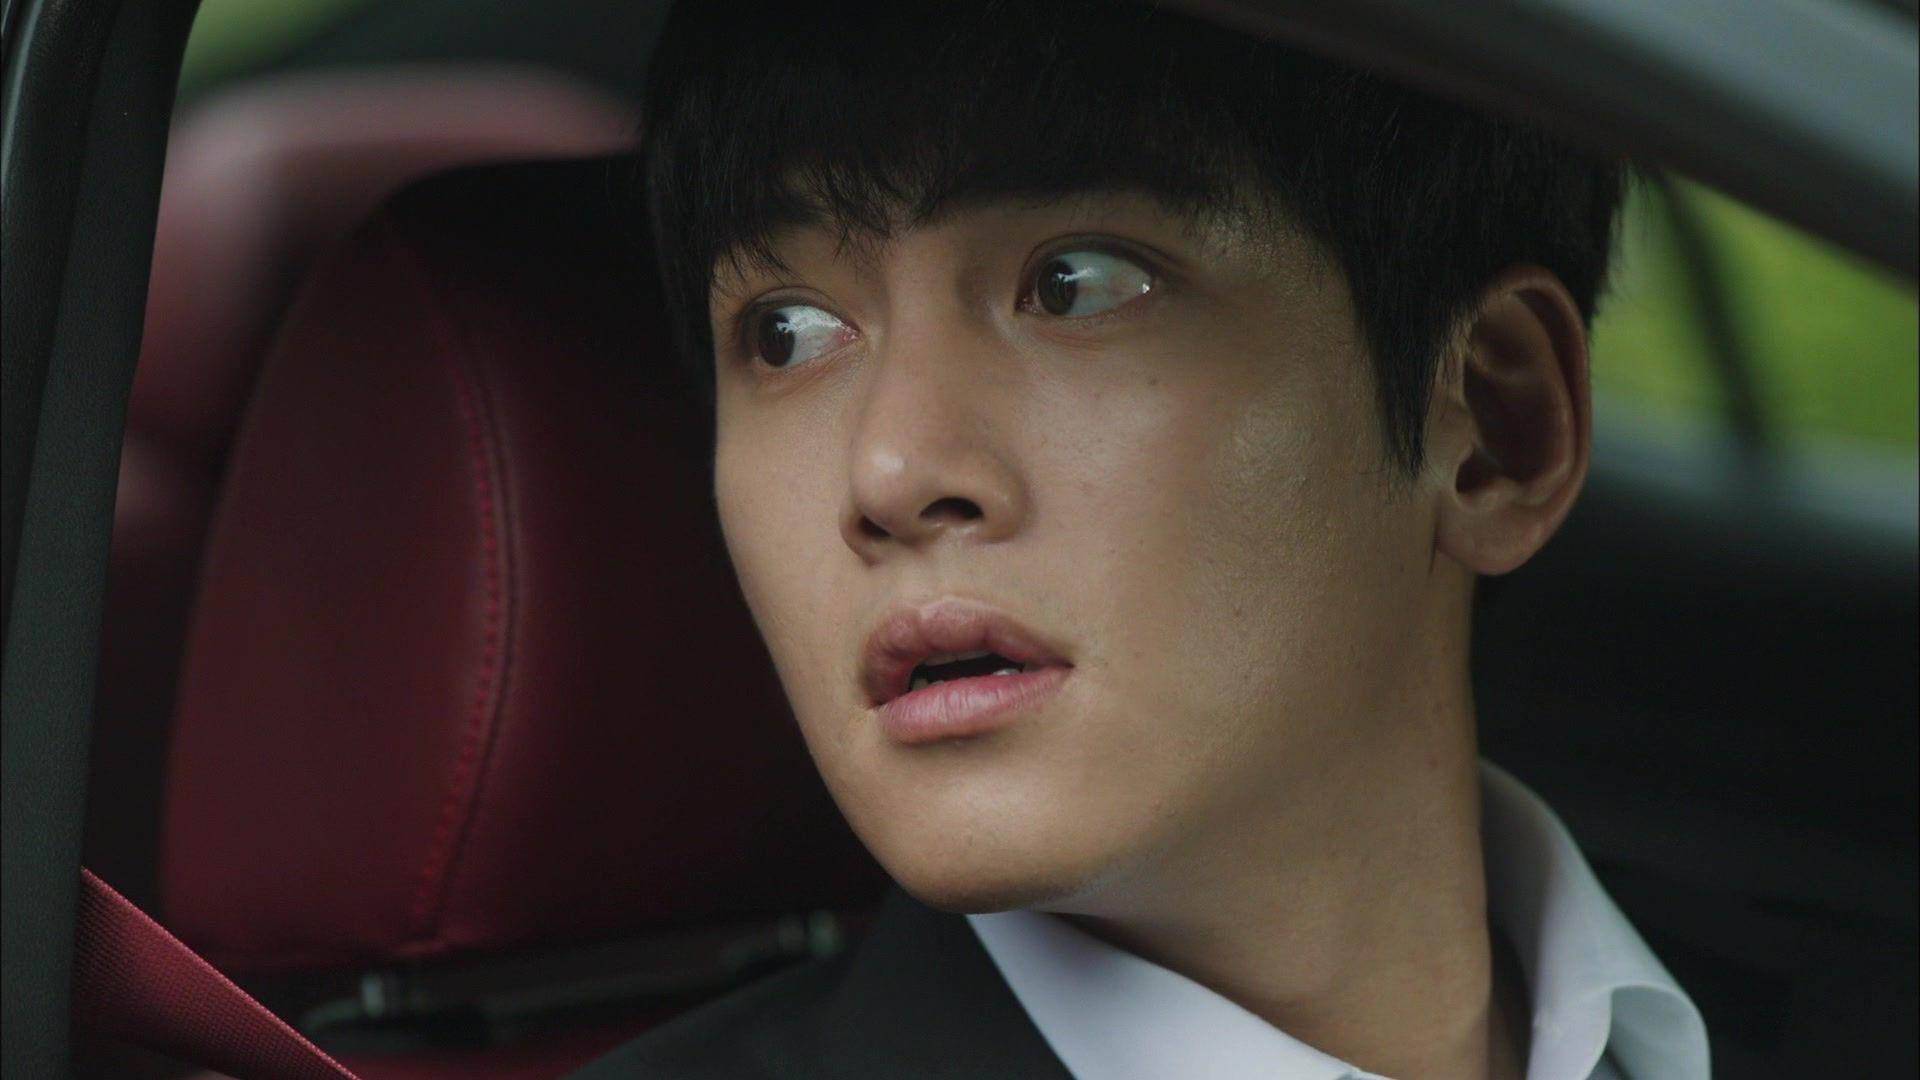 The K2 Episode 6